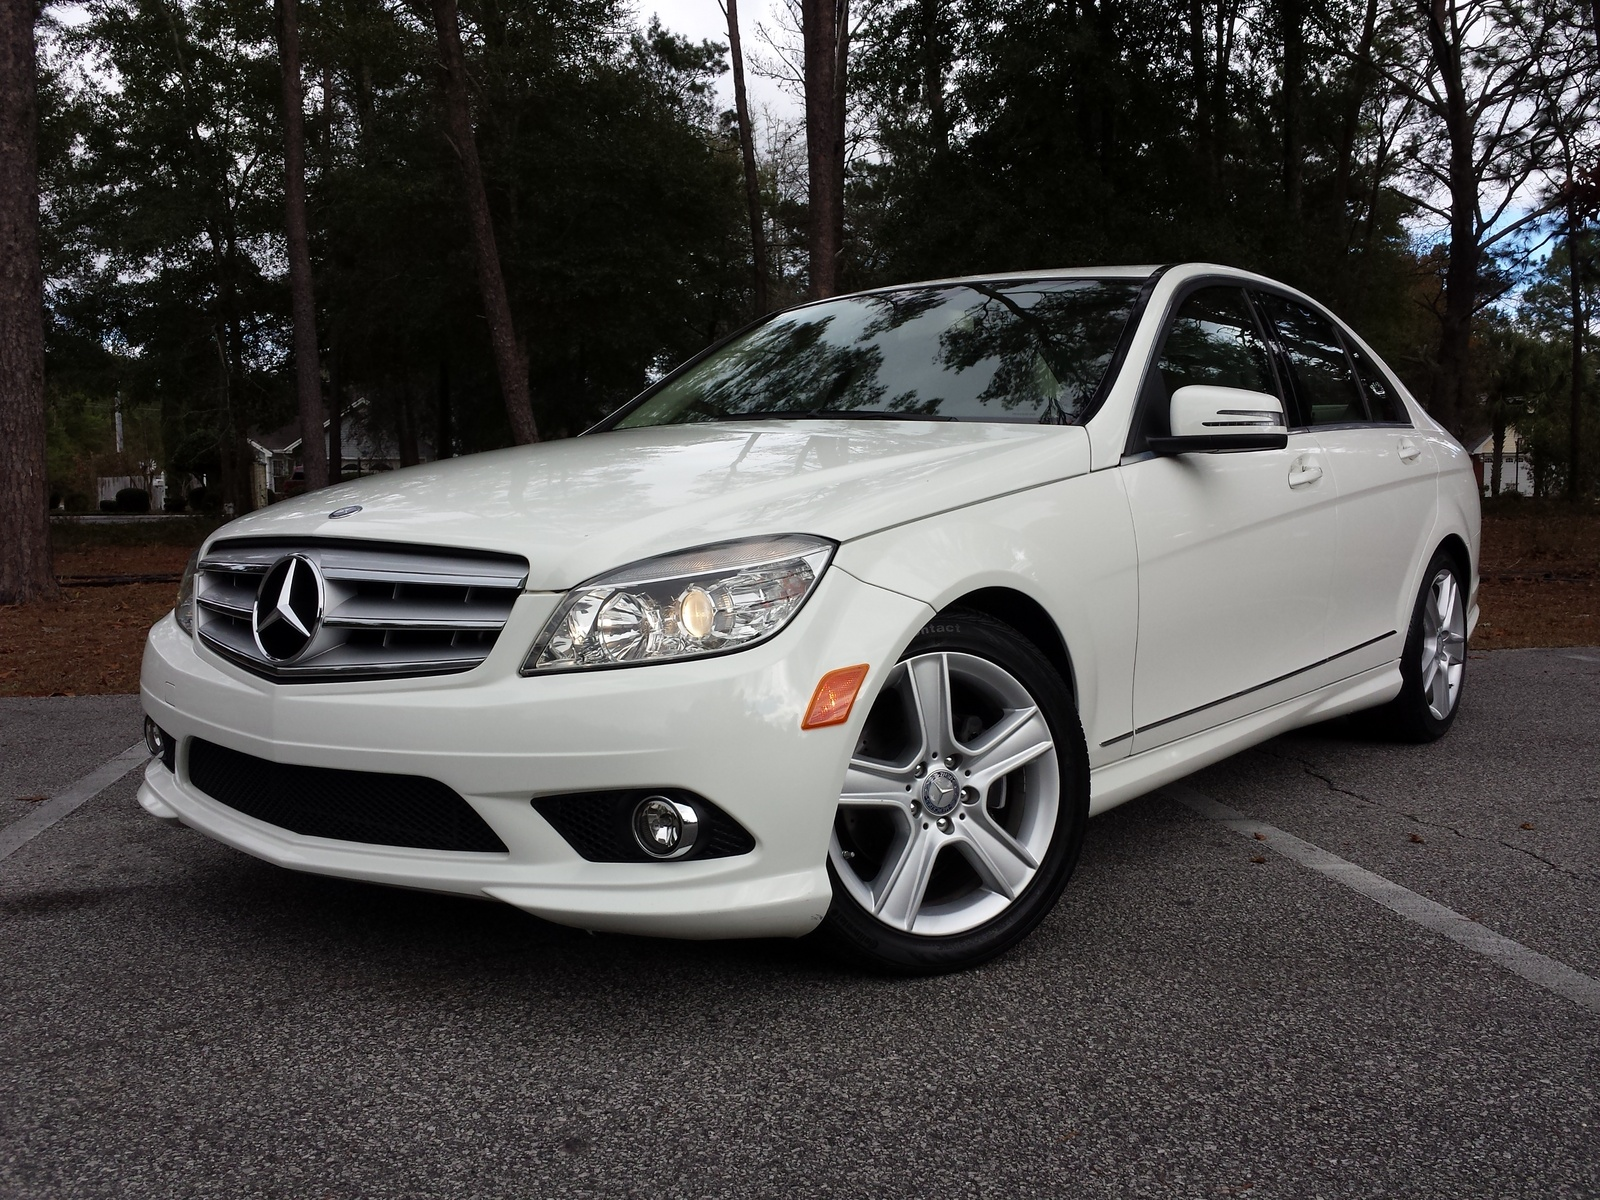 Picture of 2010 mercedes benz c class c300 luxury exterior for Mercedes benz 2010 c class